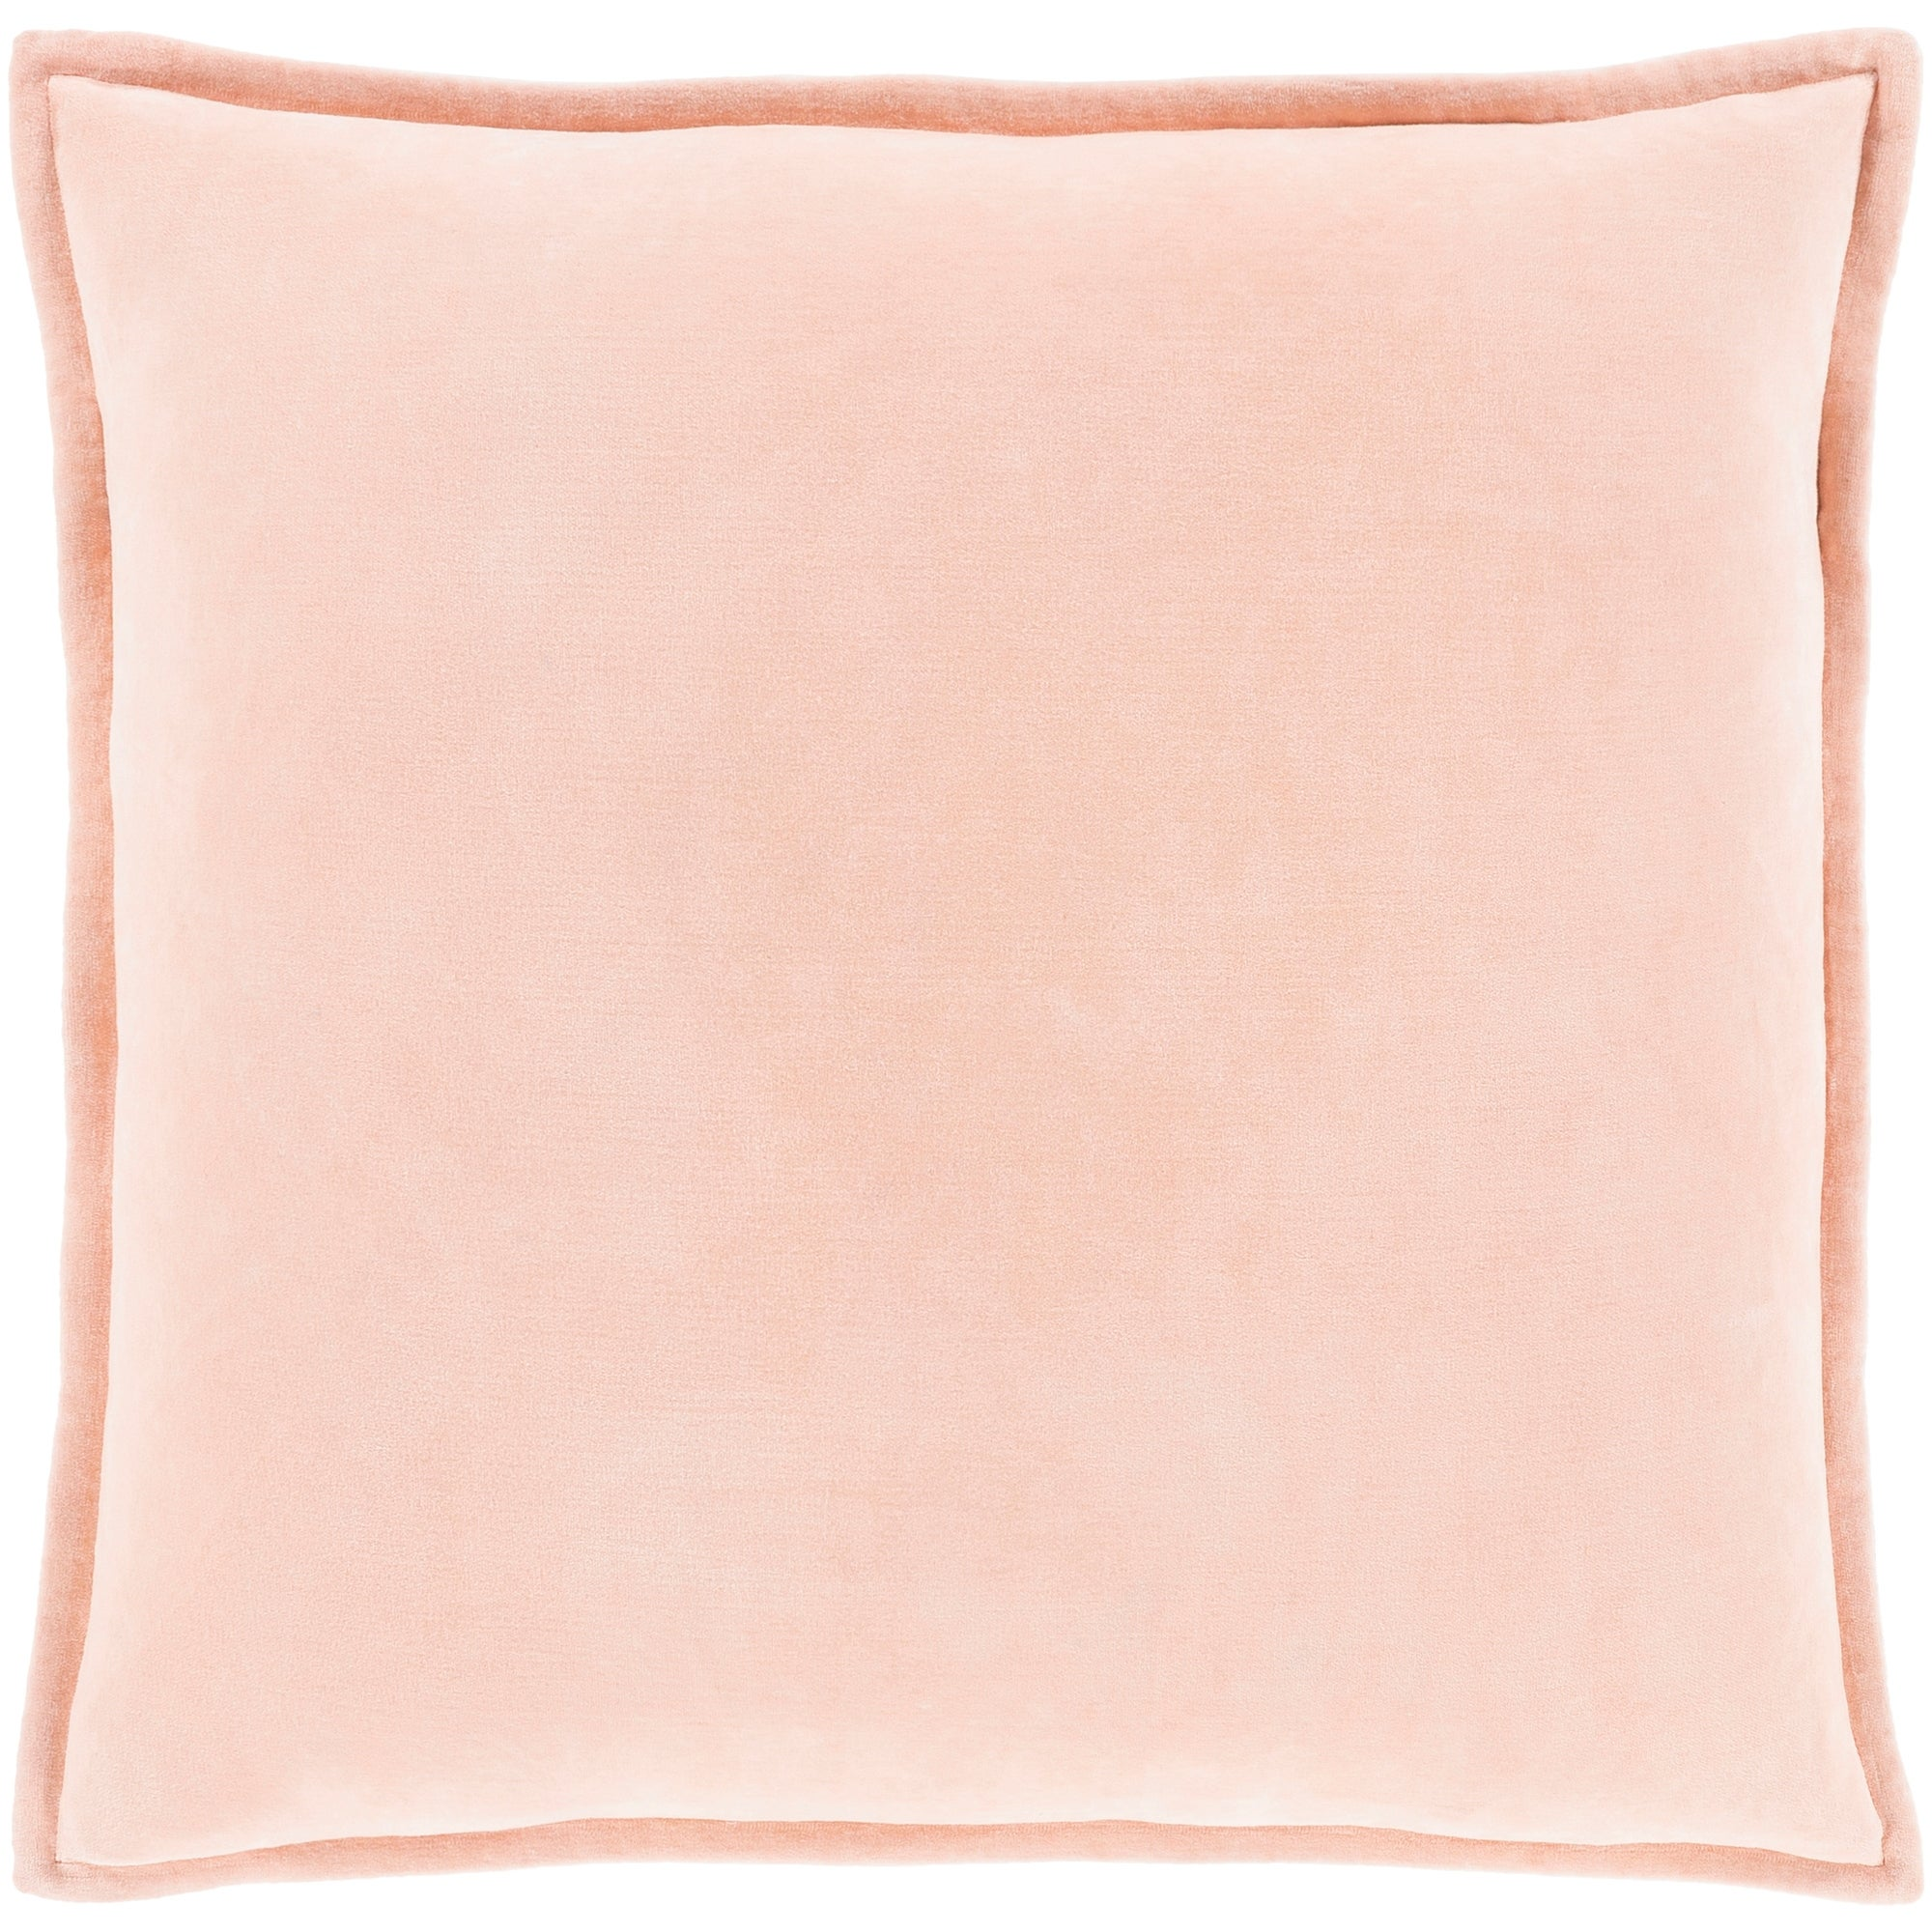 Vianne Solid Peach Pillow Cover 22 X 22 On Sale Overstock 23143594